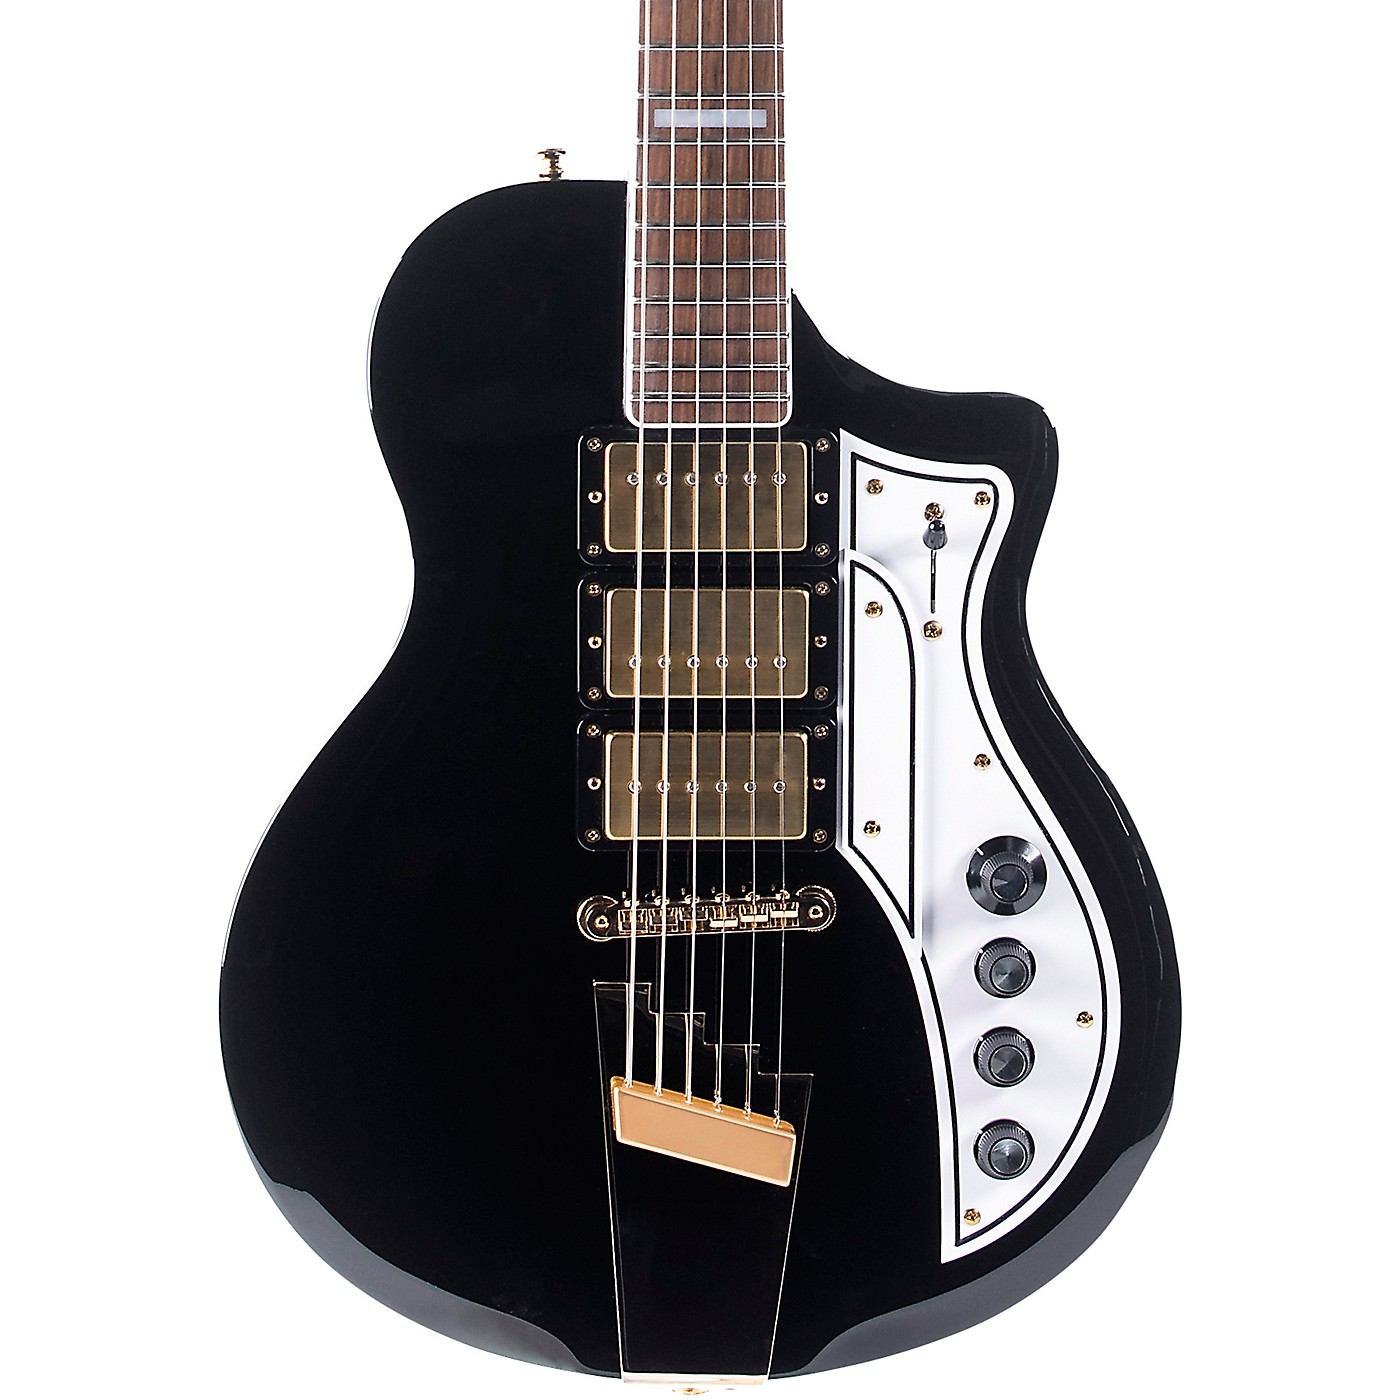 Supro 1275JB Supro Tri Tone Solid Body Electric Guitar thumbnail